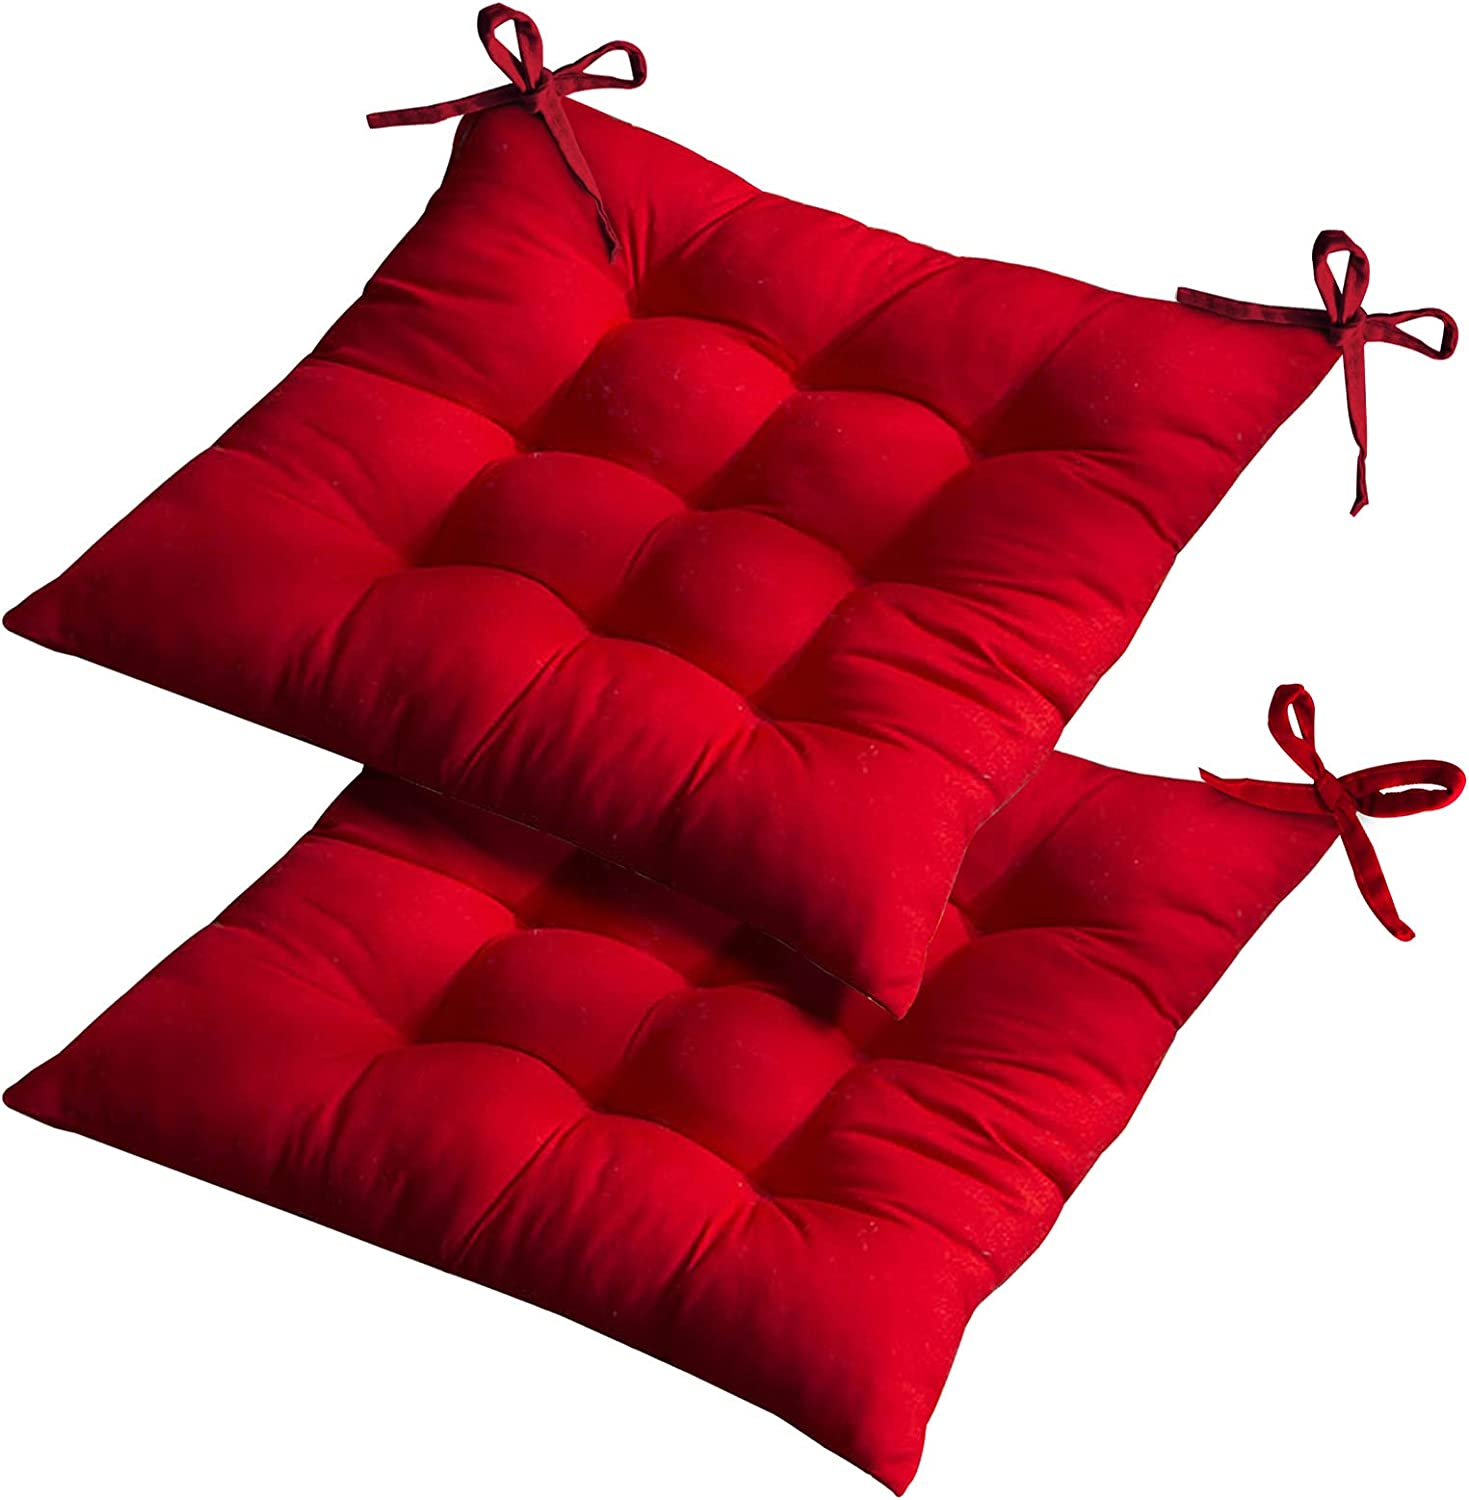 Set of 2 Outdoor Chair Cushions, Thick Soft and Comfortable Dining Chair Cushions with Ties for Indoor Outdoor Garden Car Office Patio Furniture Decoration. (15.7515.75 inch) (Red)